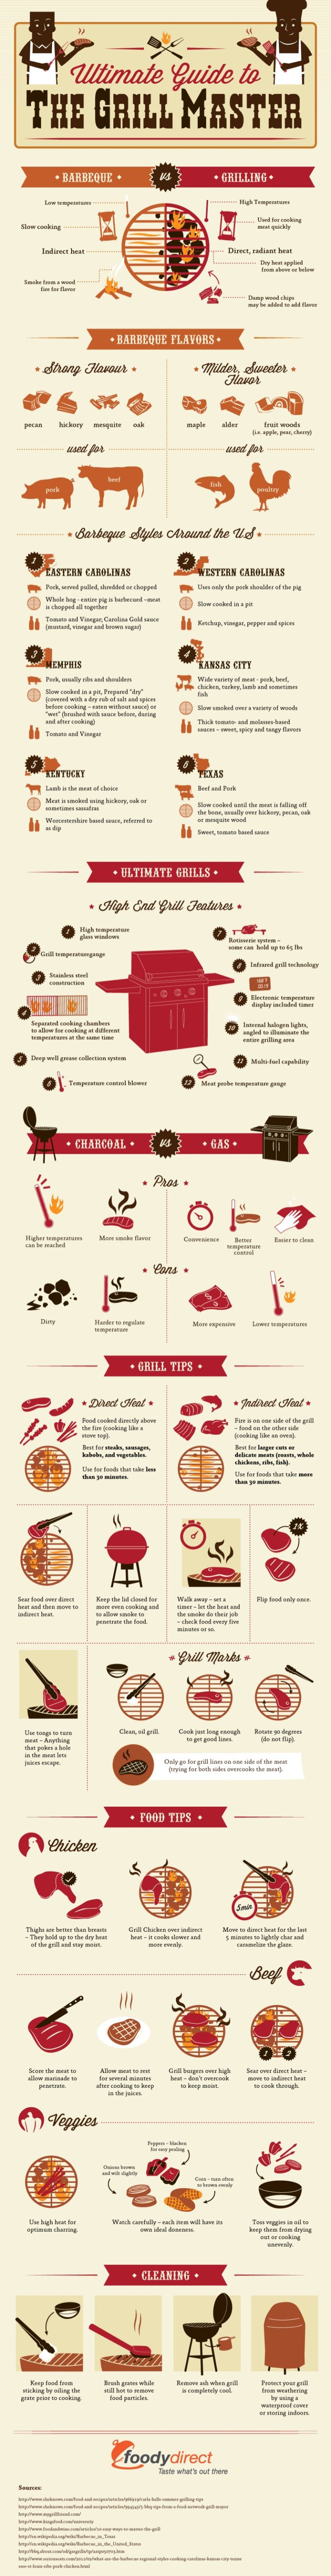 148 best bbq smokers pits images on pinterest outdoor cooking